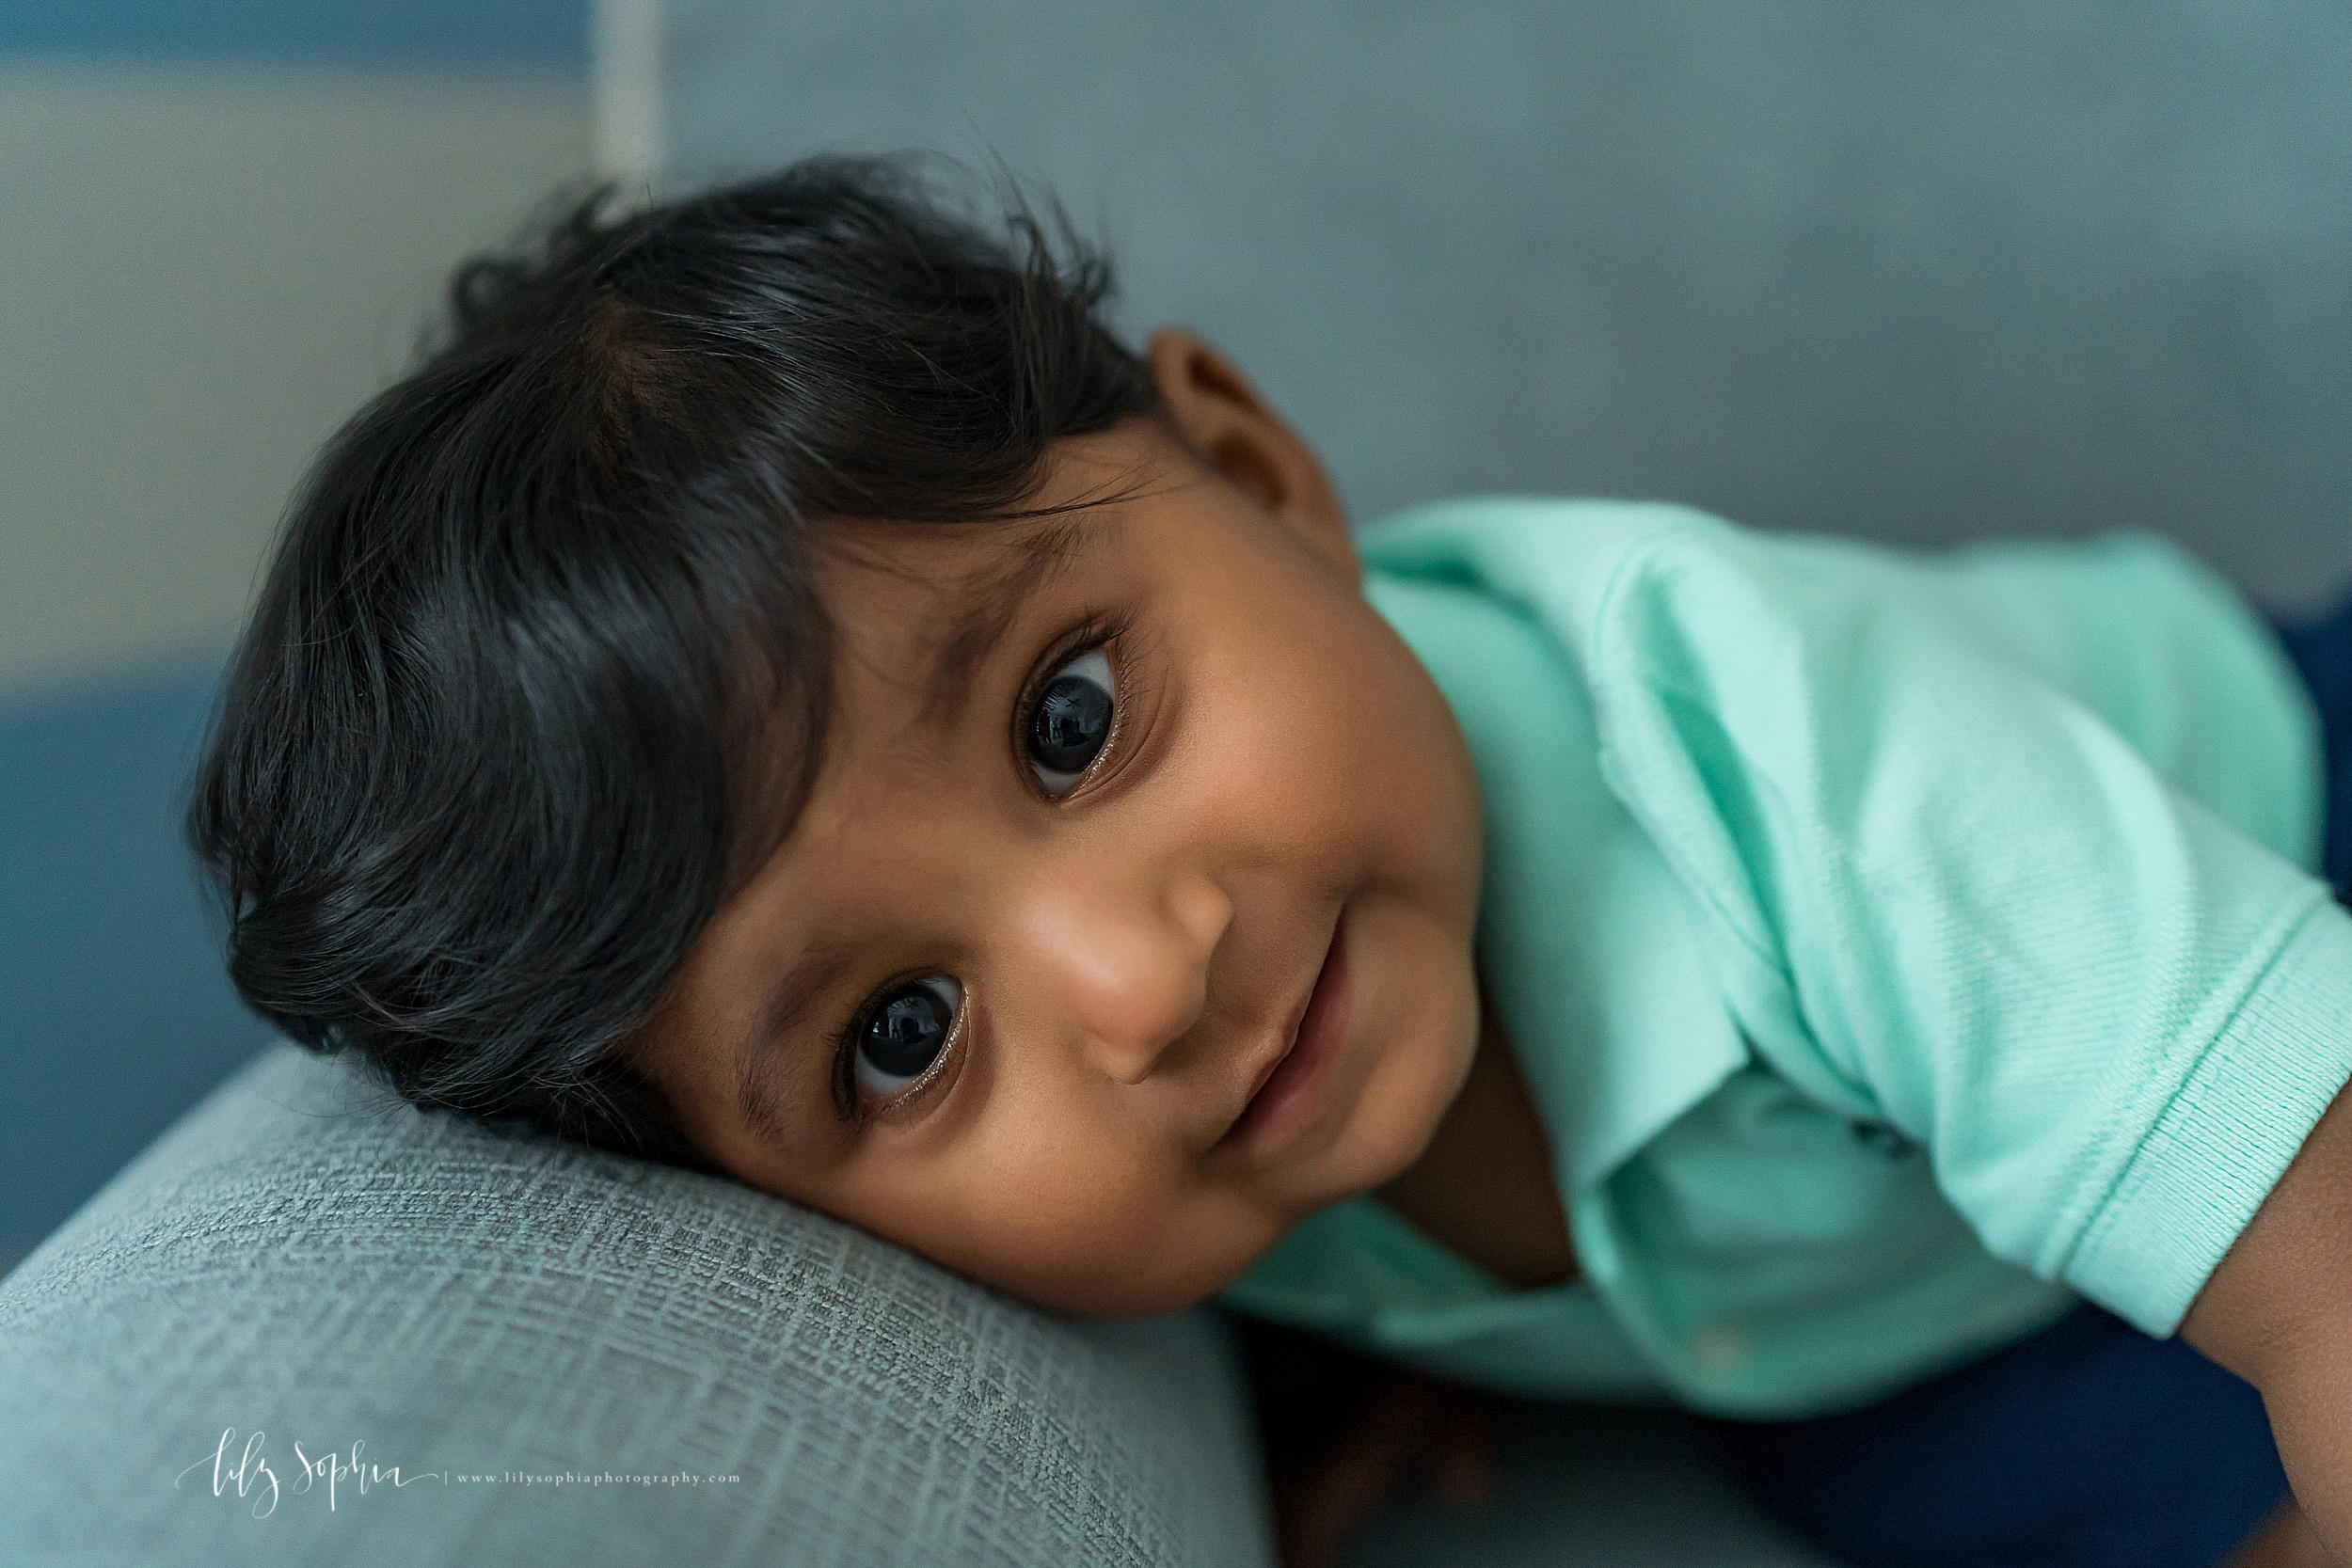 atlanta-brookhaven-east-cobb-marietta-candler-park-sandy-springs-buckhead-virginia-highlands-west-end-decatur-lily-sophia-photography-in-home-lifestyle-session-eight-month-milestone-indian-family_1660.jpg